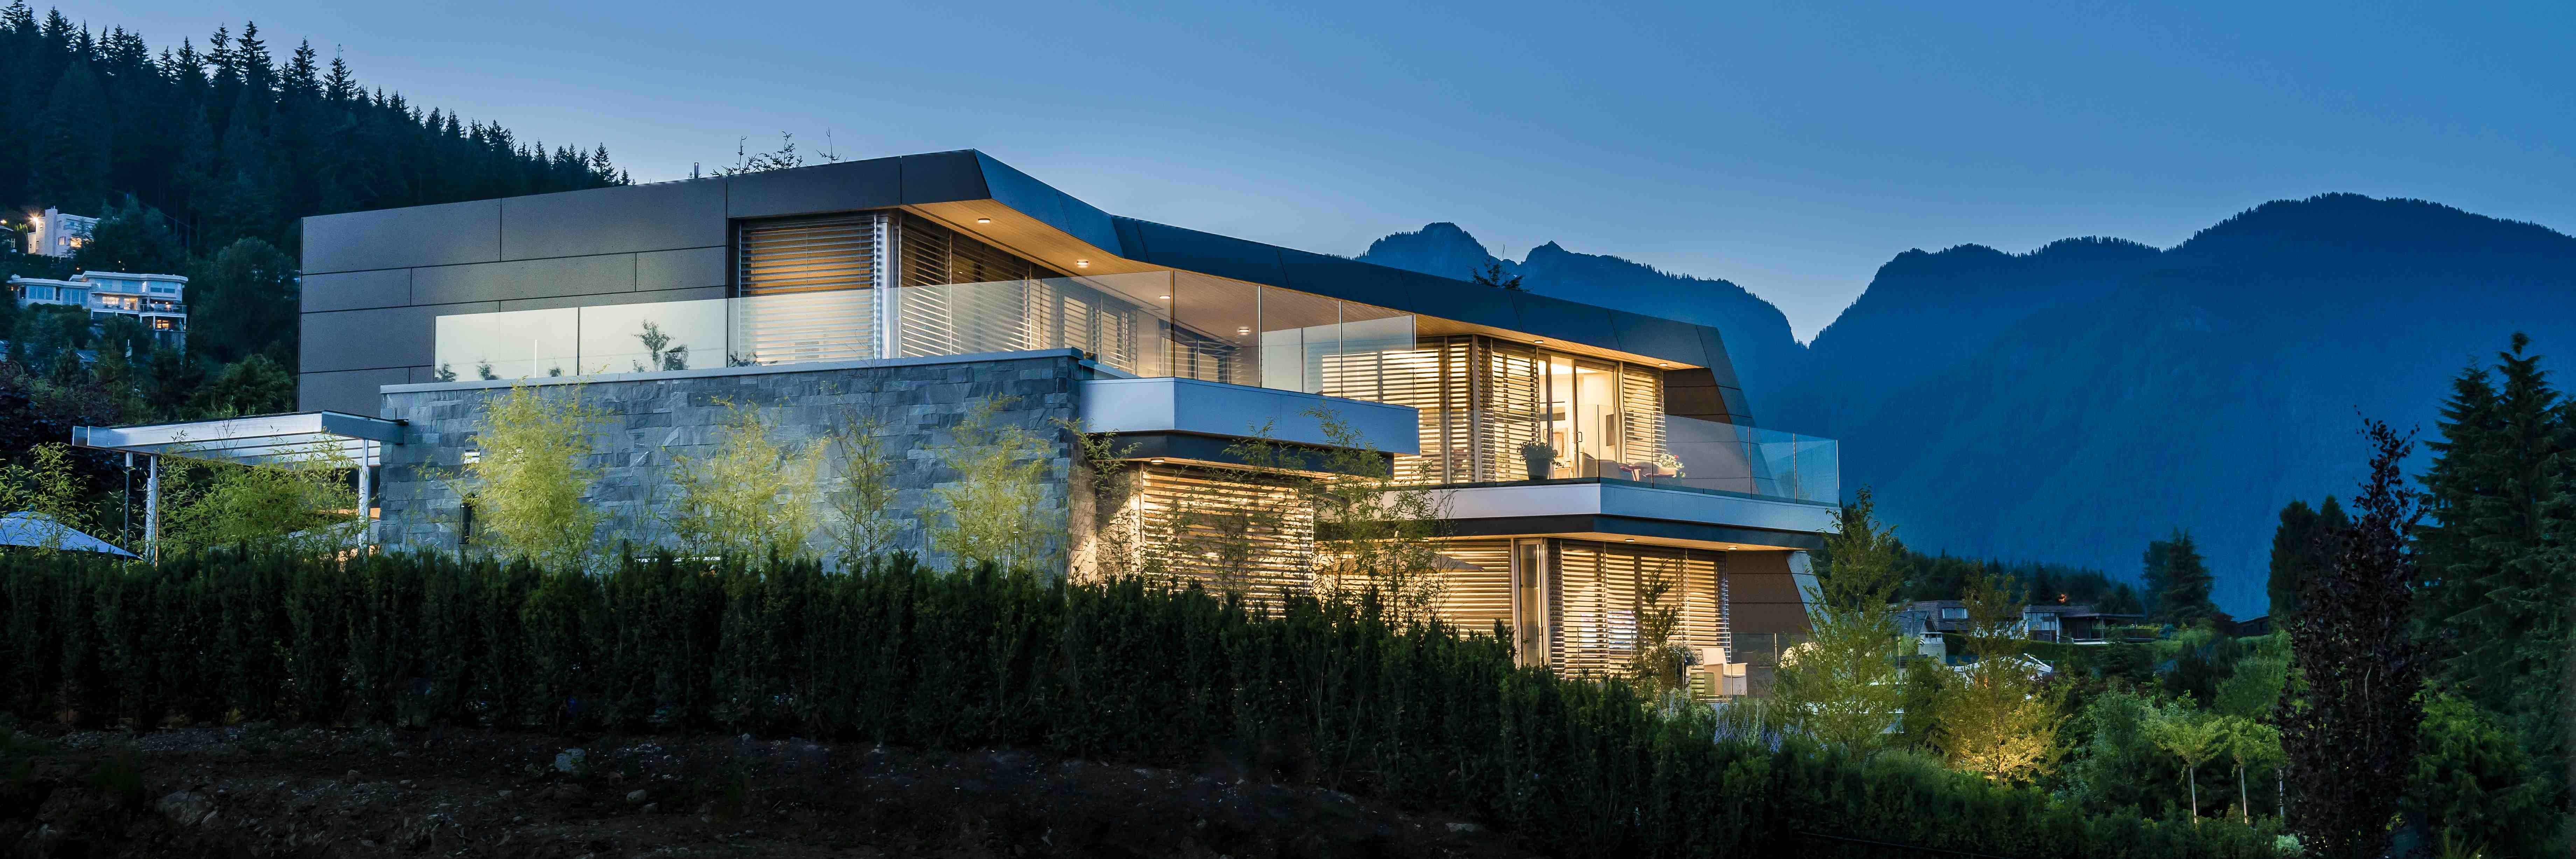 Second Annual Vancouver Modern Home Tour Opens Doors